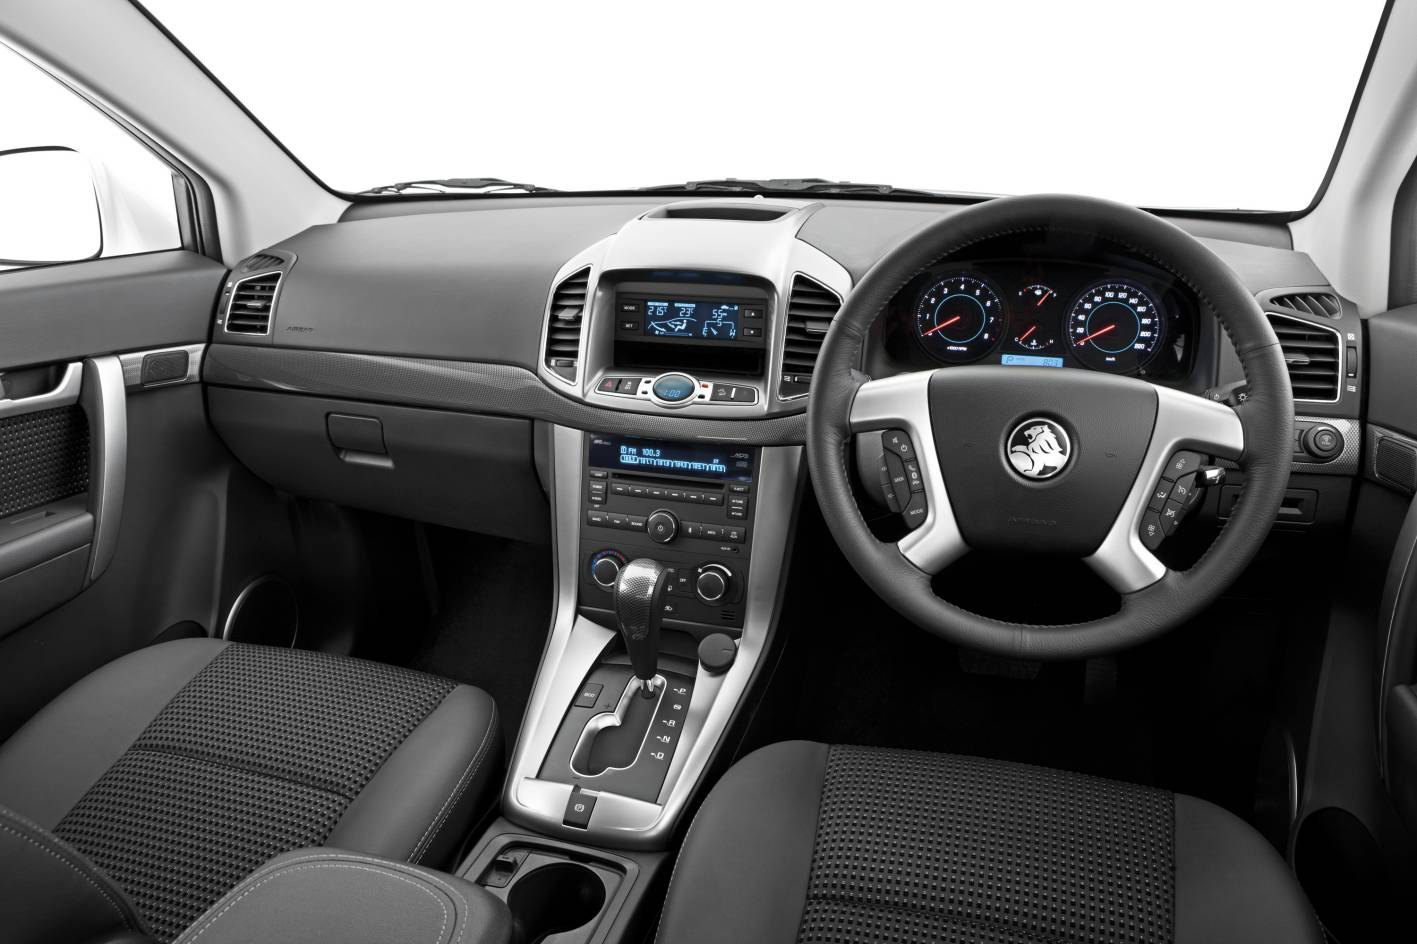 Car Picker - holden Captiva interior images